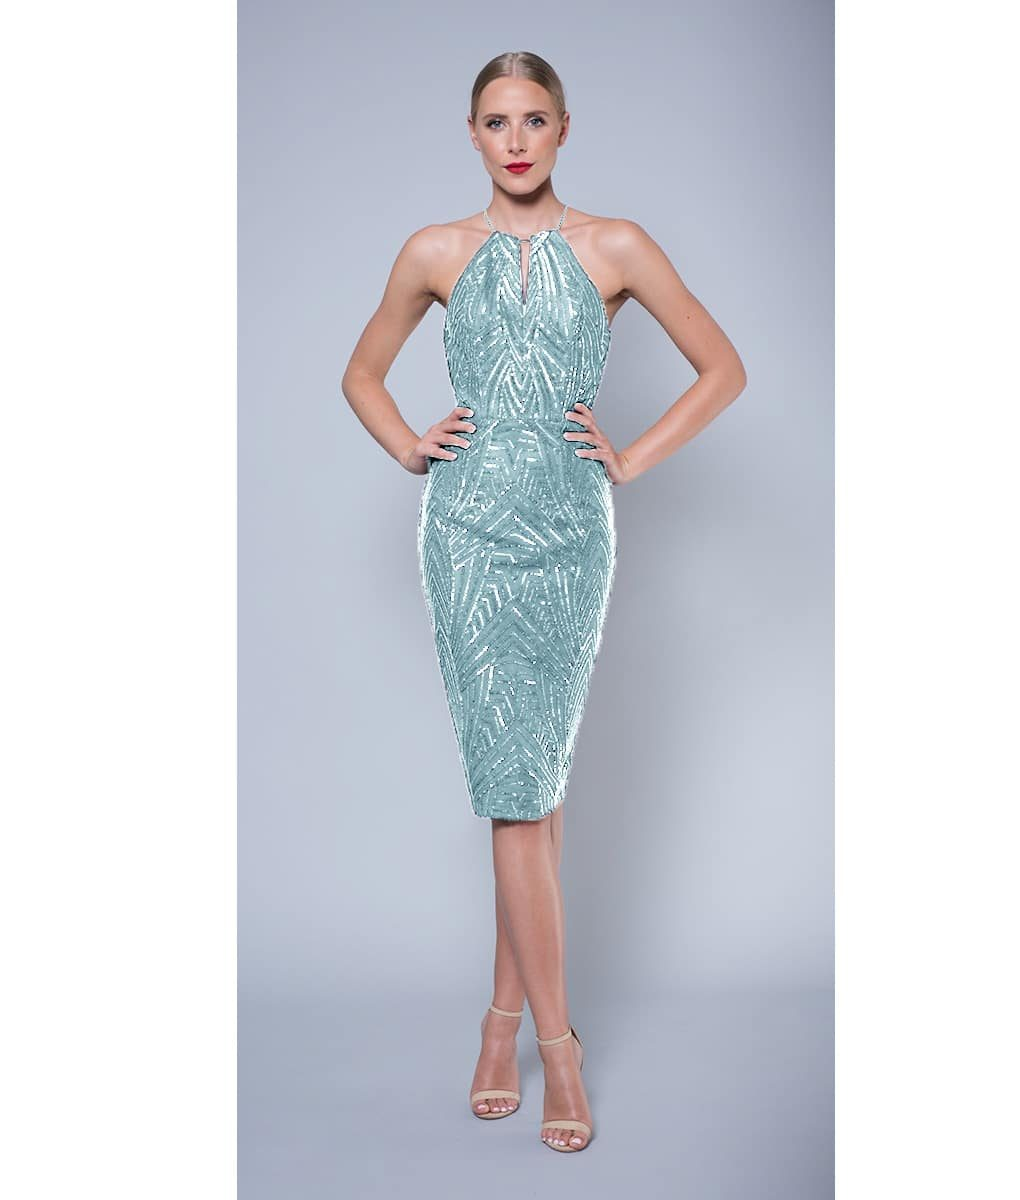 Alila-Mint-embellished-keyhole-midi-dress-Lumier-Bariano